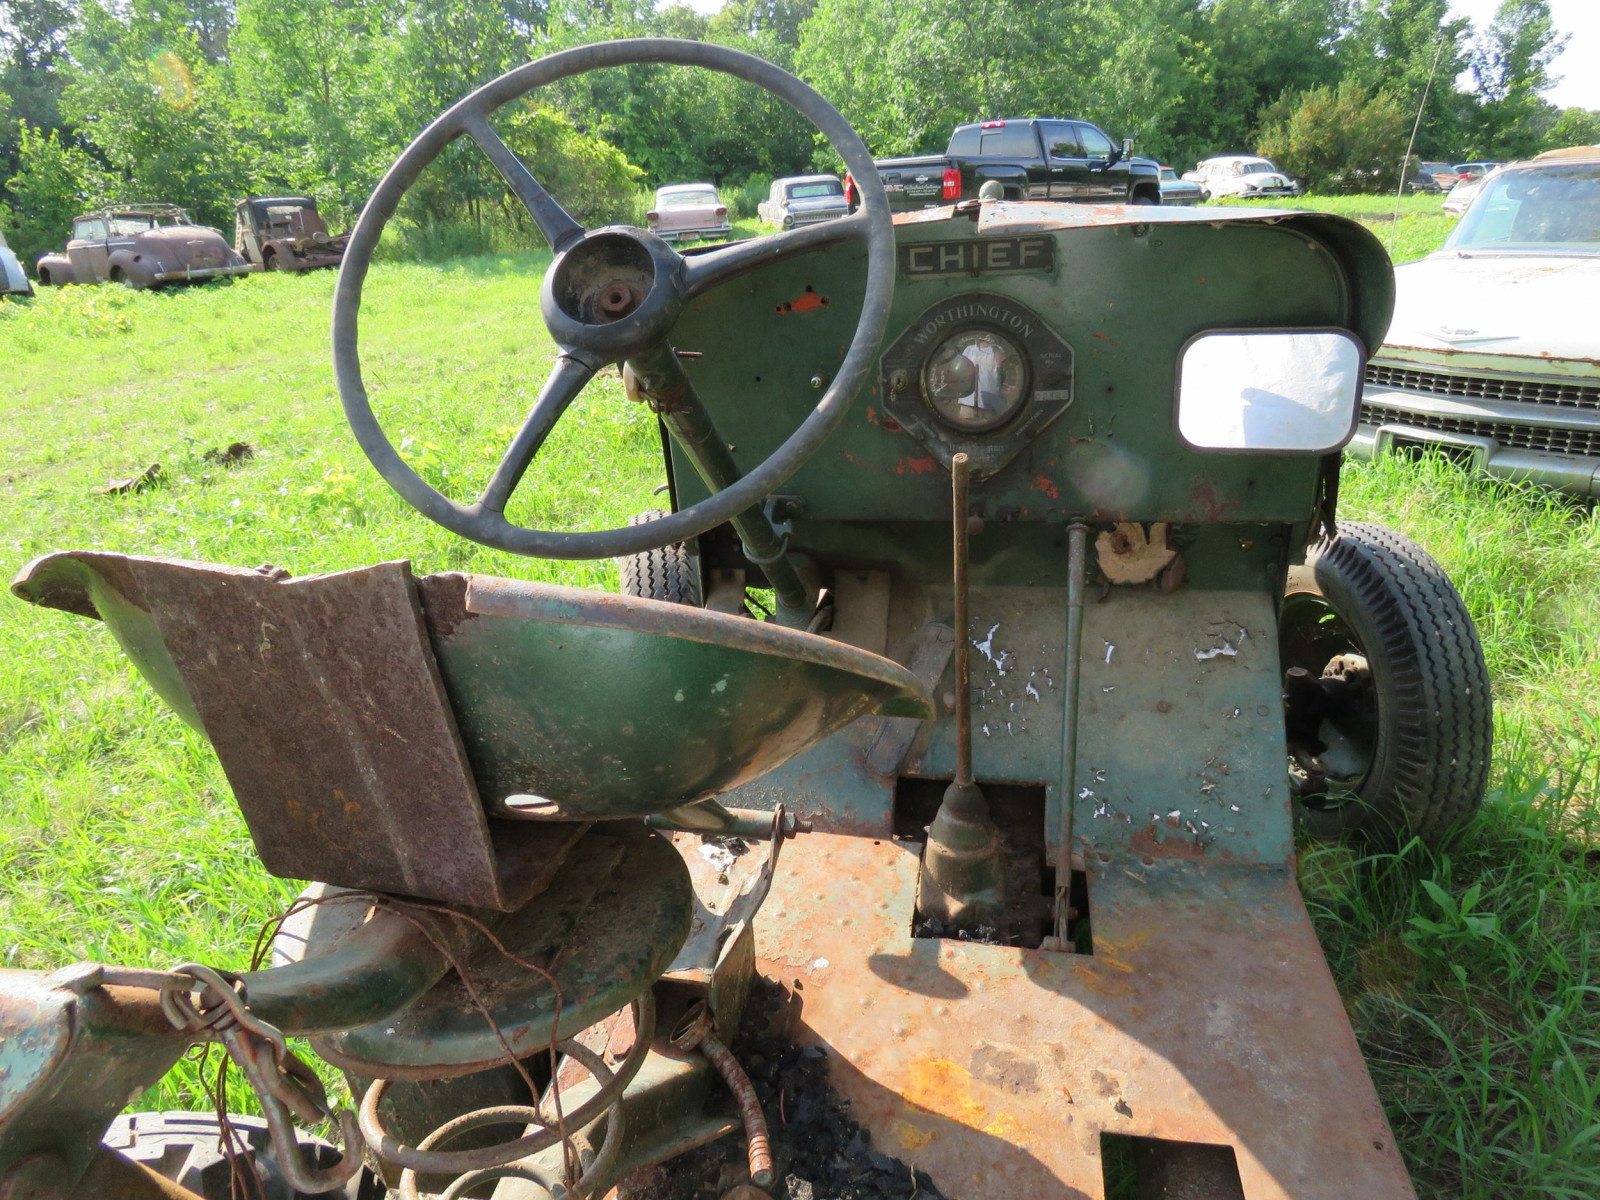 Worthington Mower Chief Lawn Tractor - Image 4